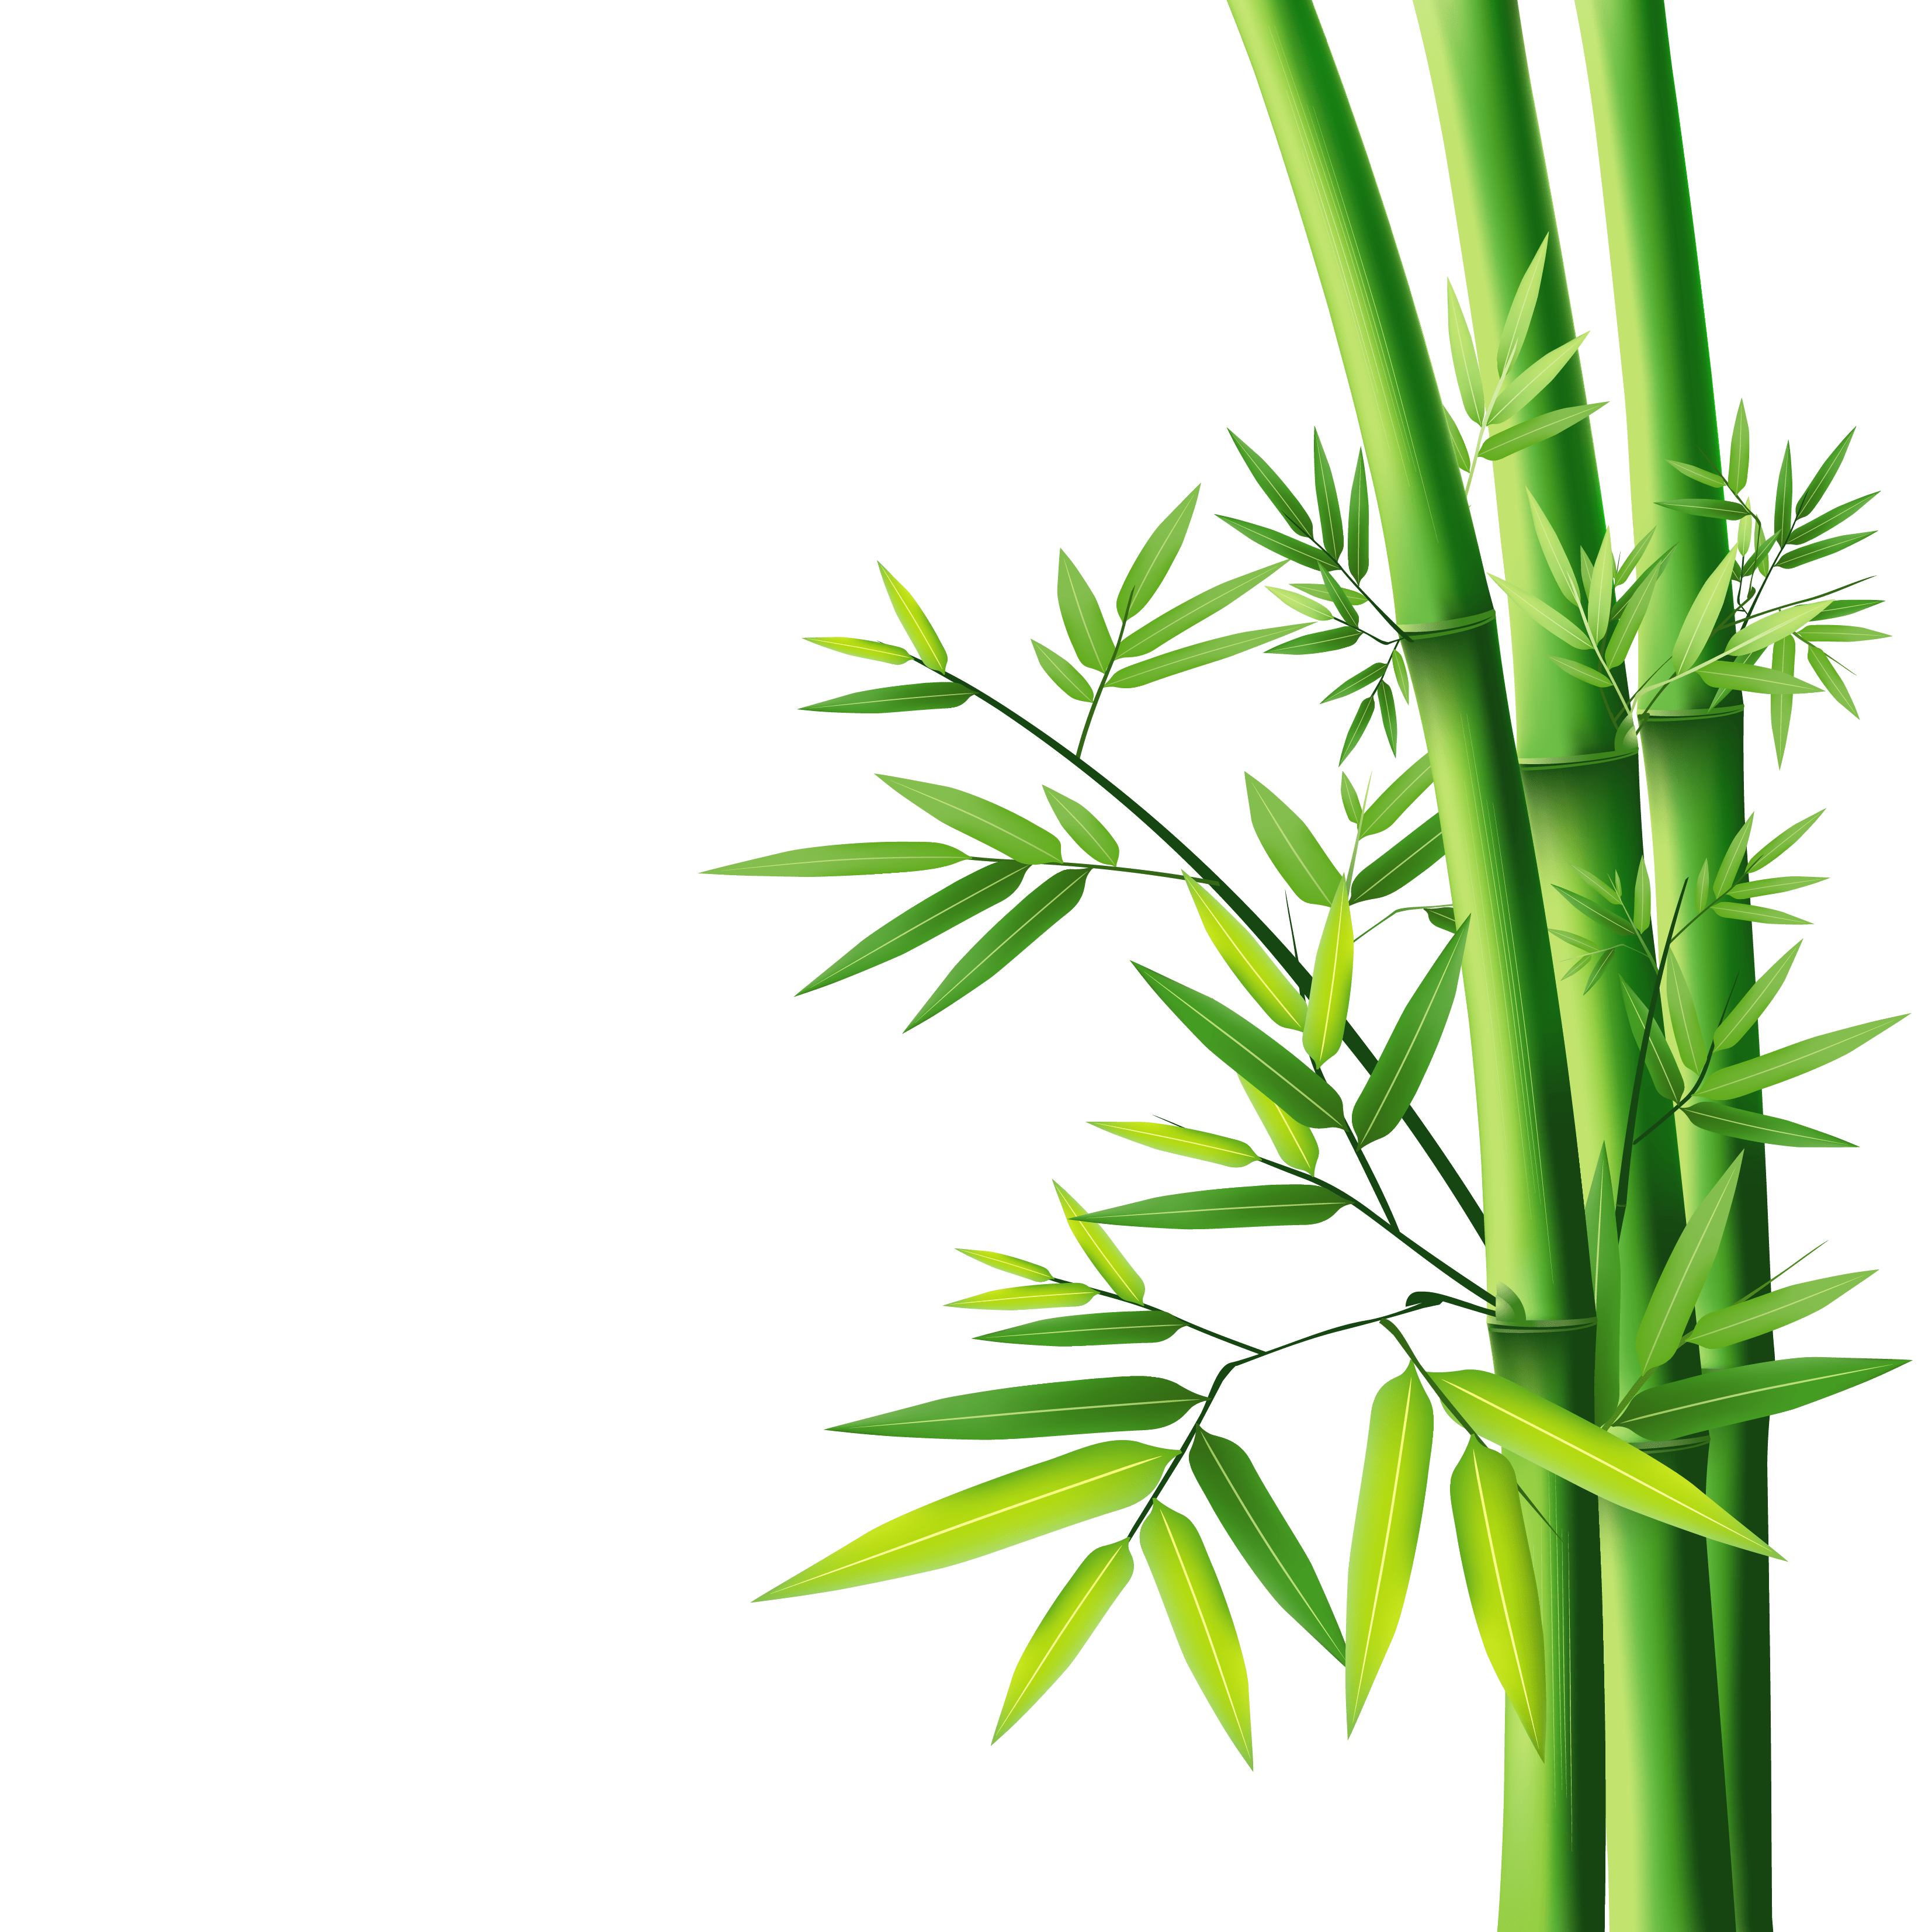 Nature PNG Images Free Download